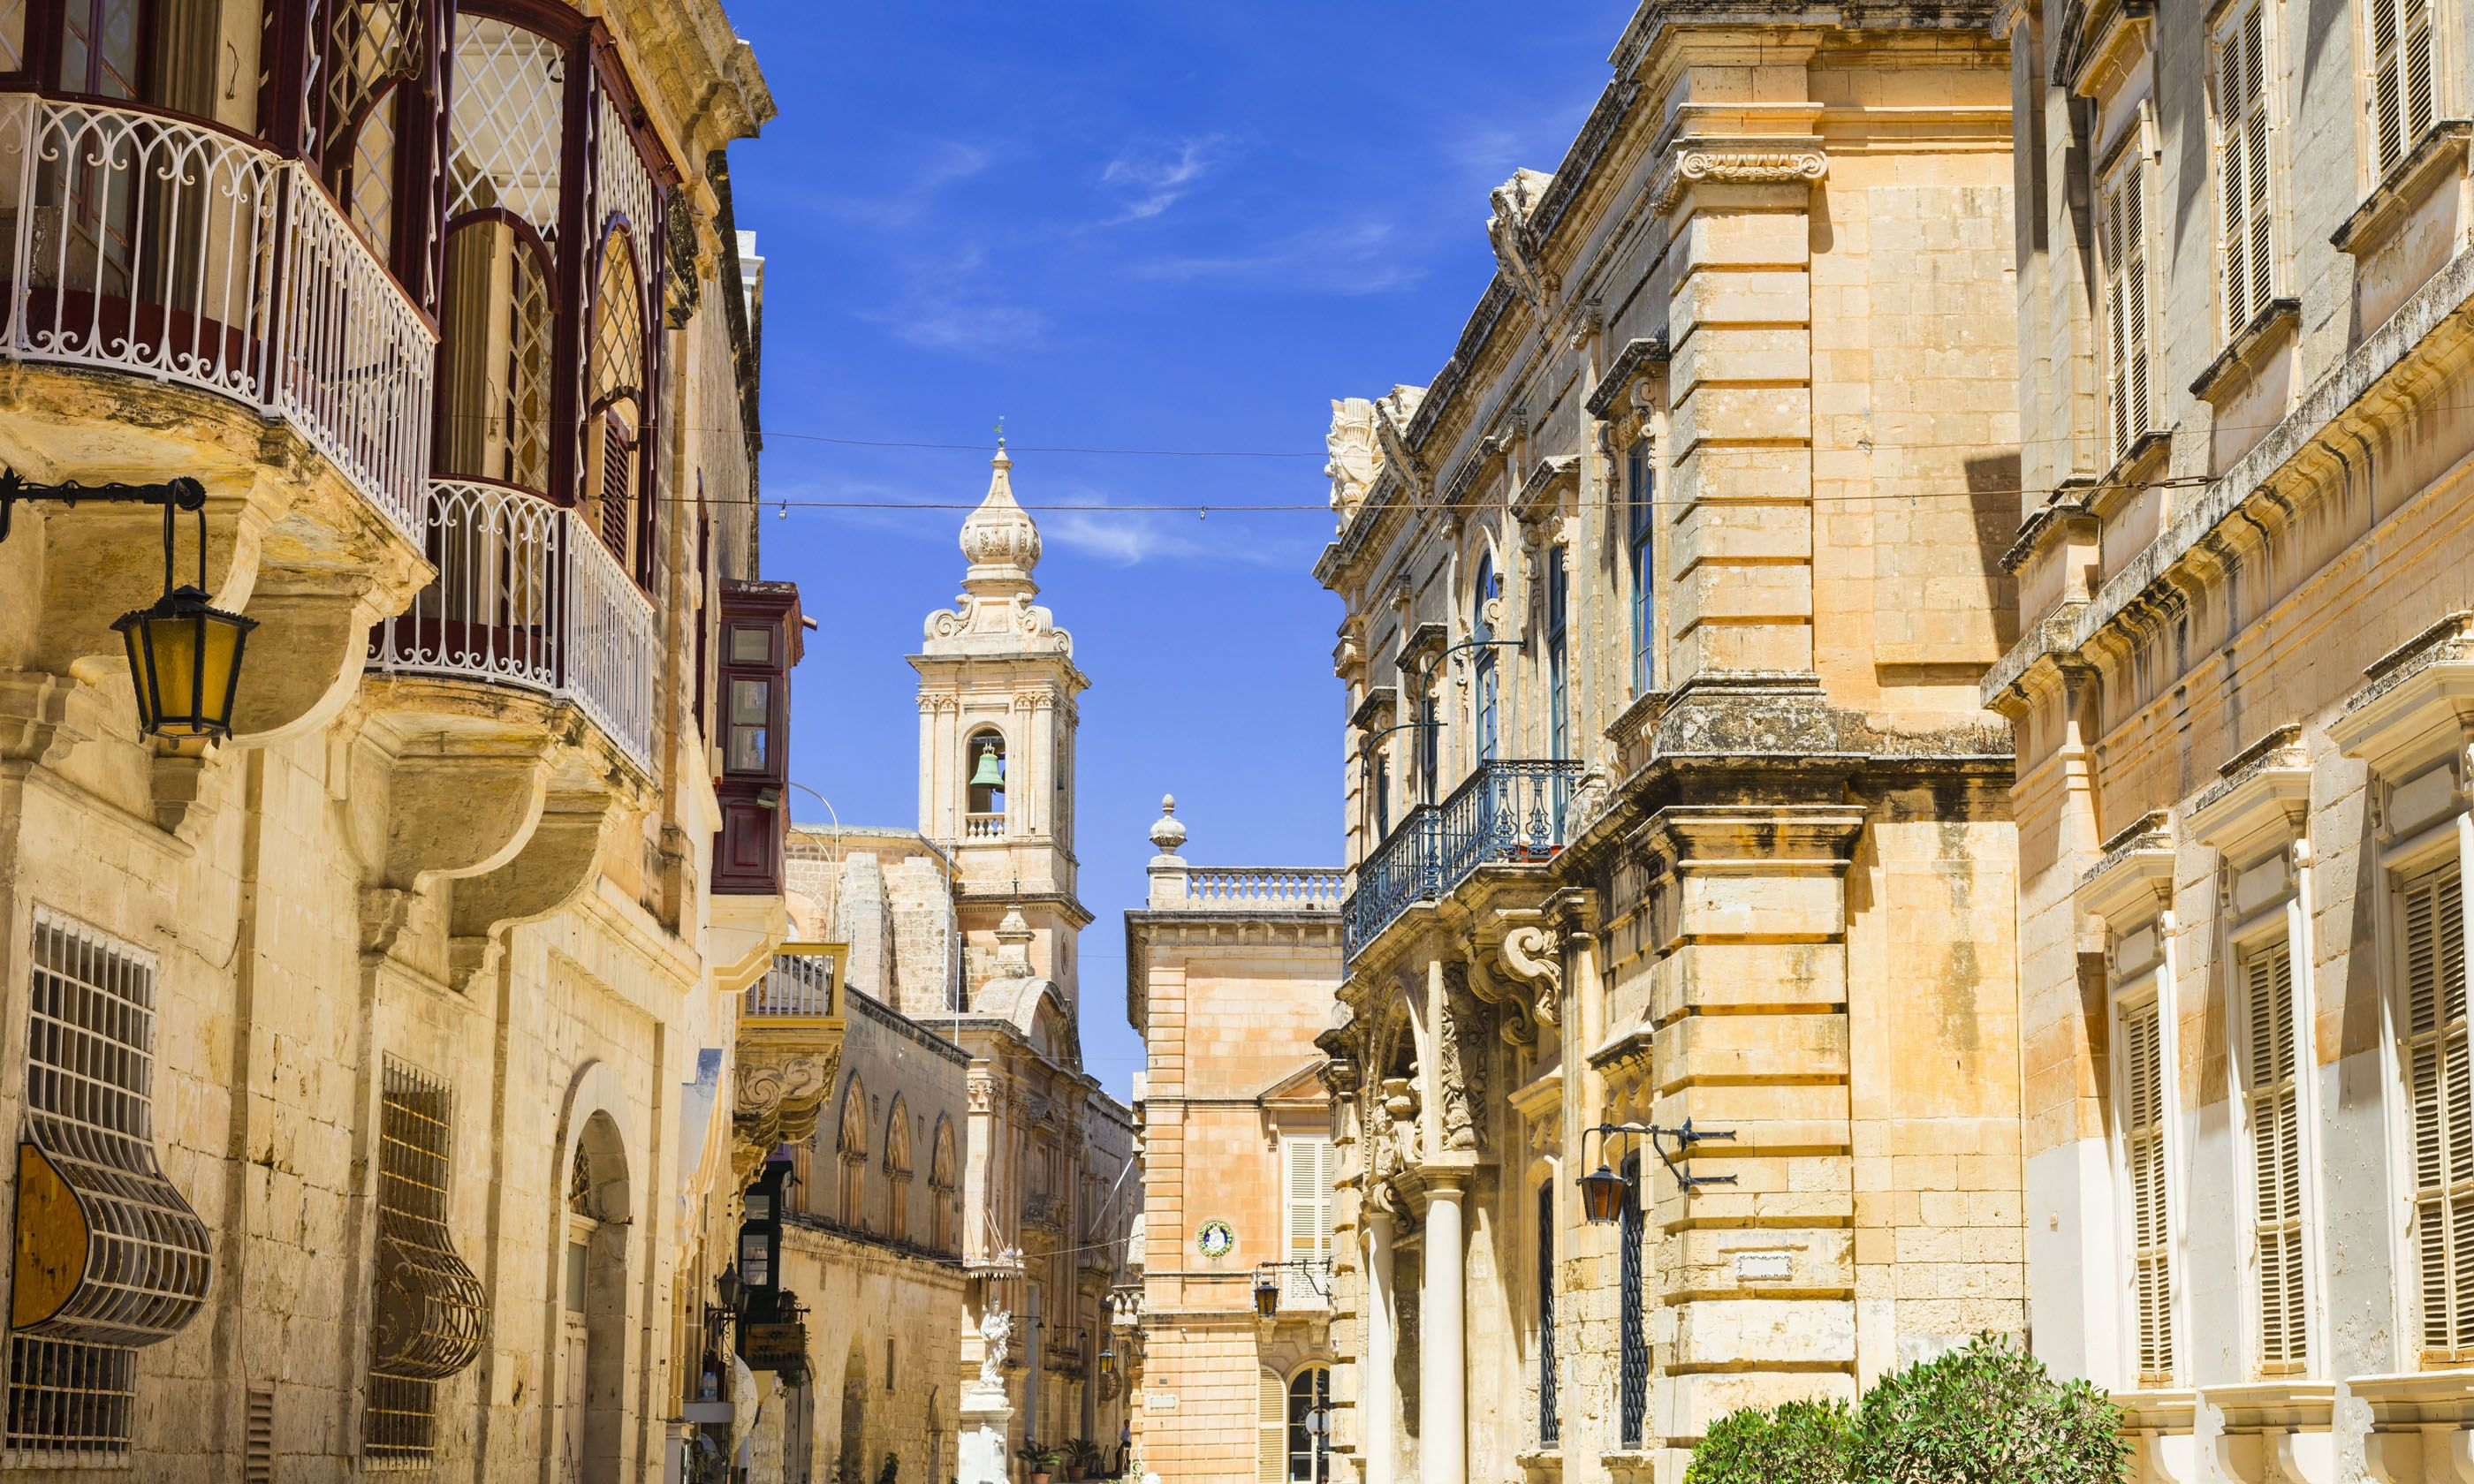 Inside the walls of Mdina (Dreamstime)